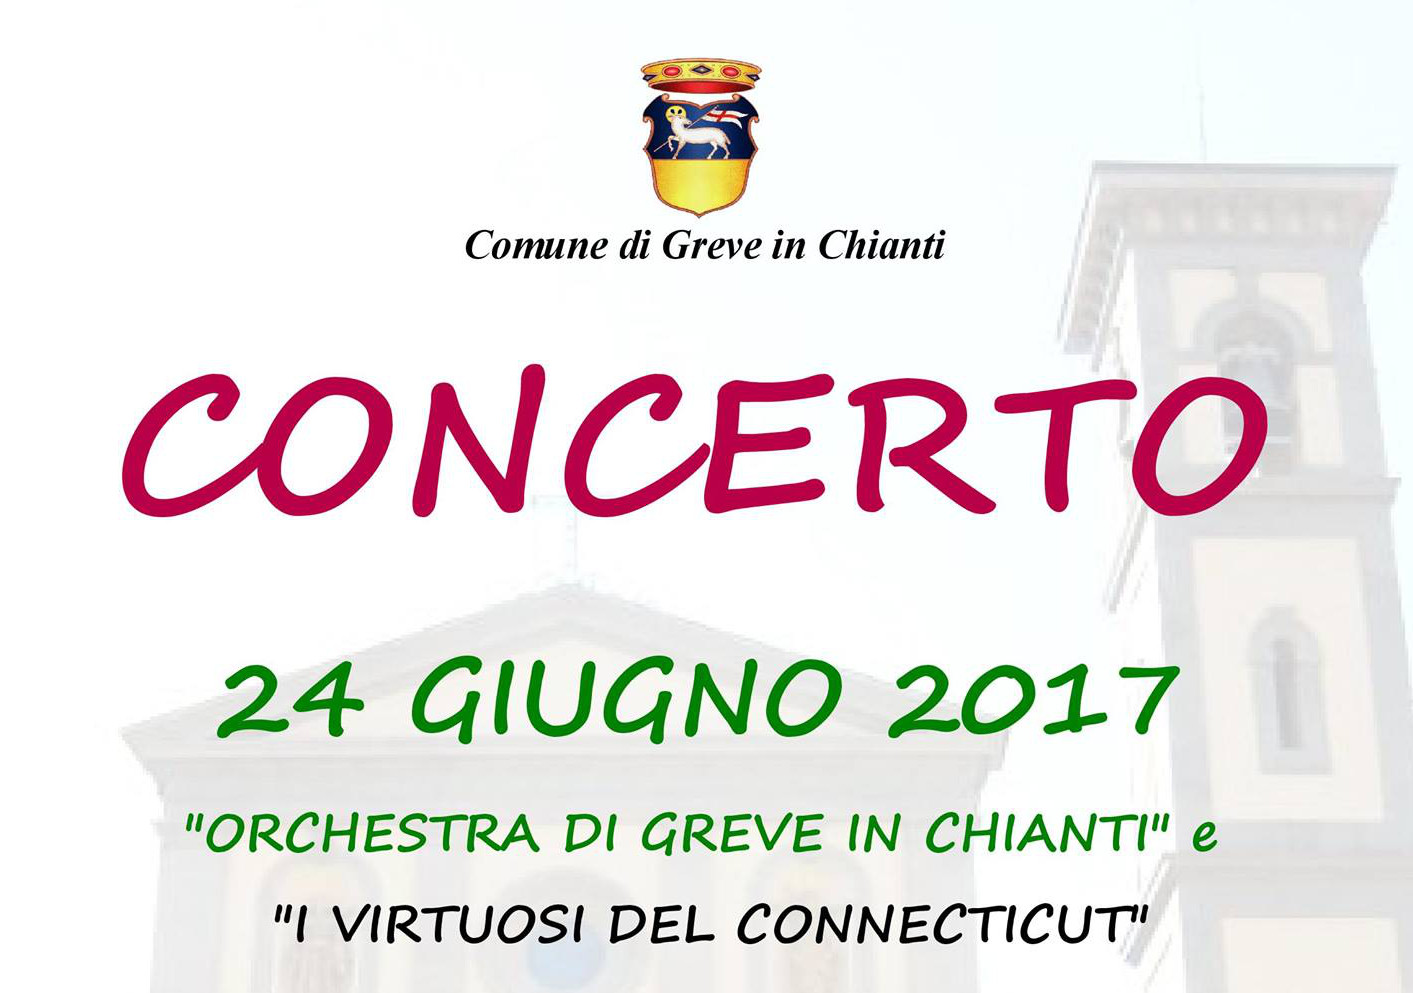 CHAMBER ORCHESTRA OF GREVE IN CHIANTI & CONNECTICUT VIRTUOSI